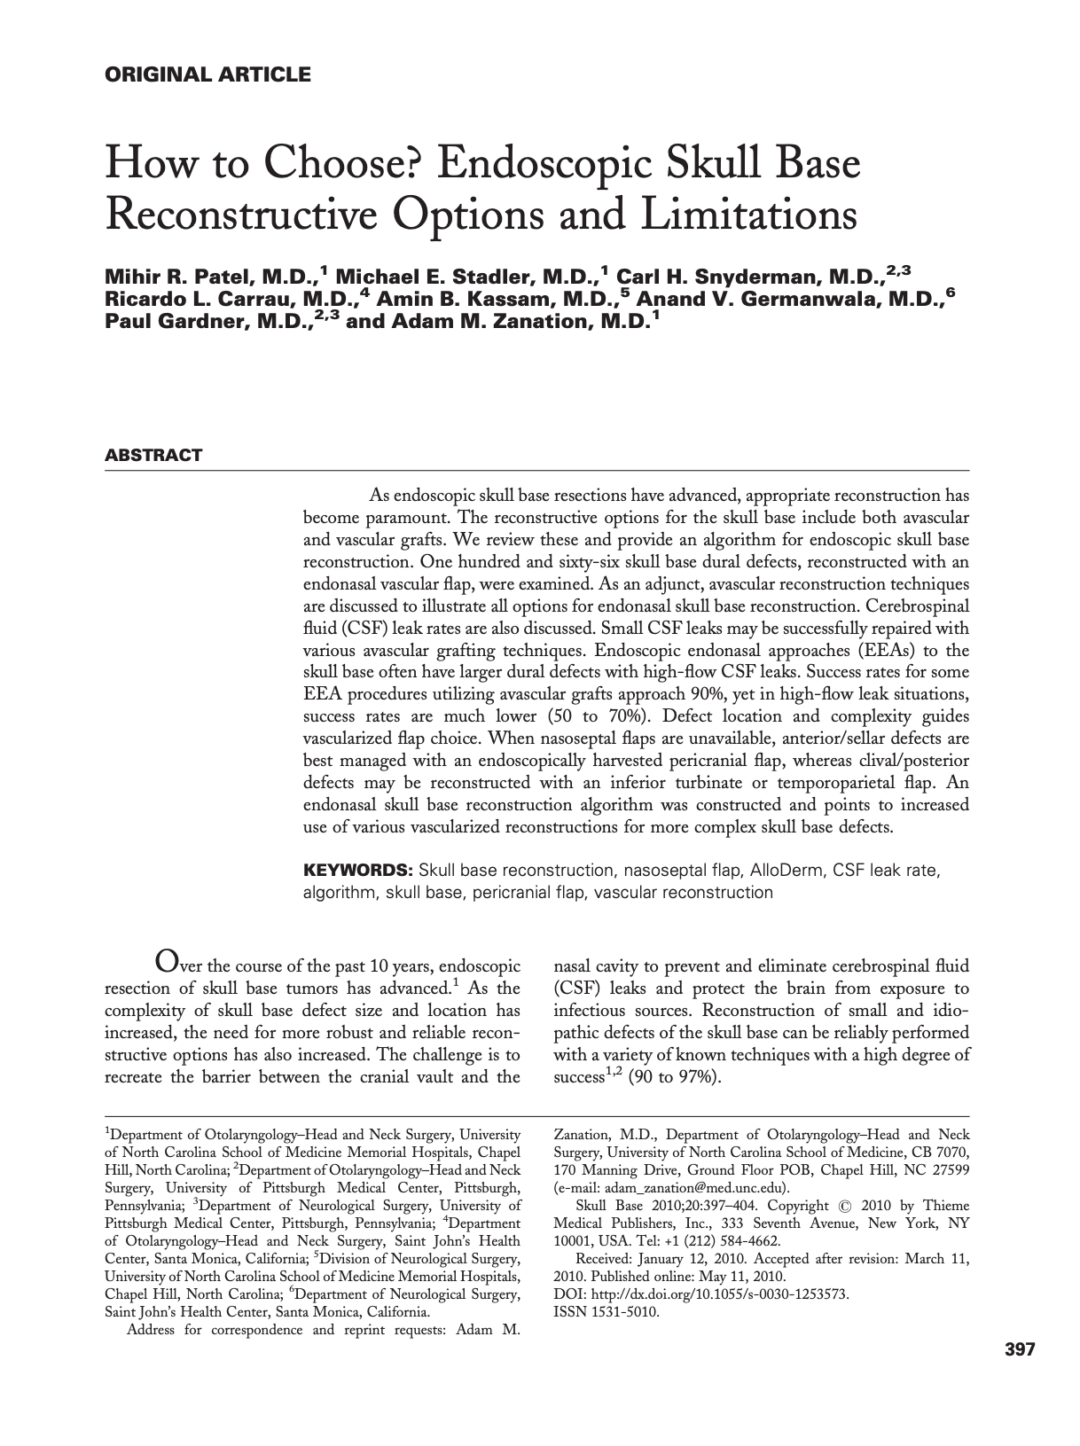 How to Choose? Endoscopic Skull Base Reconstructive Options and Limitations